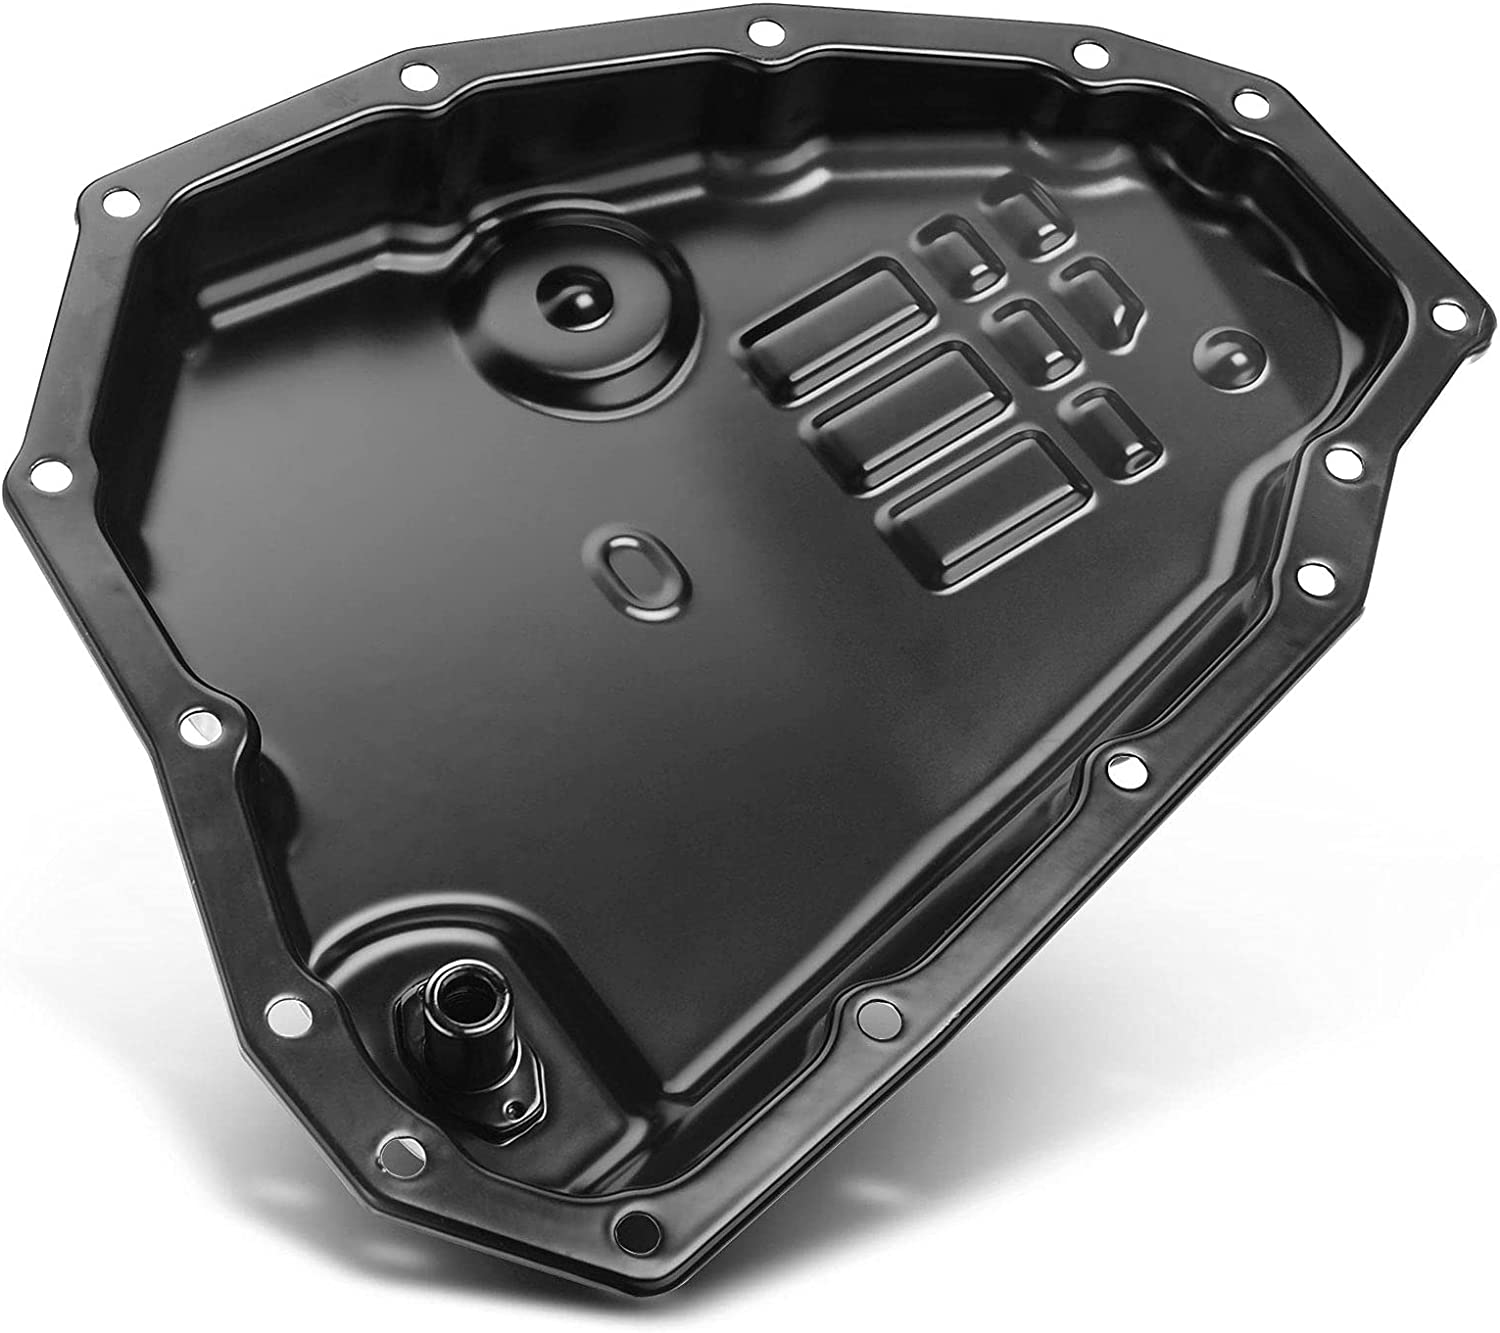 Mail order Transmission Oil Pan Replacement for Nissan Ver Sentra 2013-2016 Regular discount